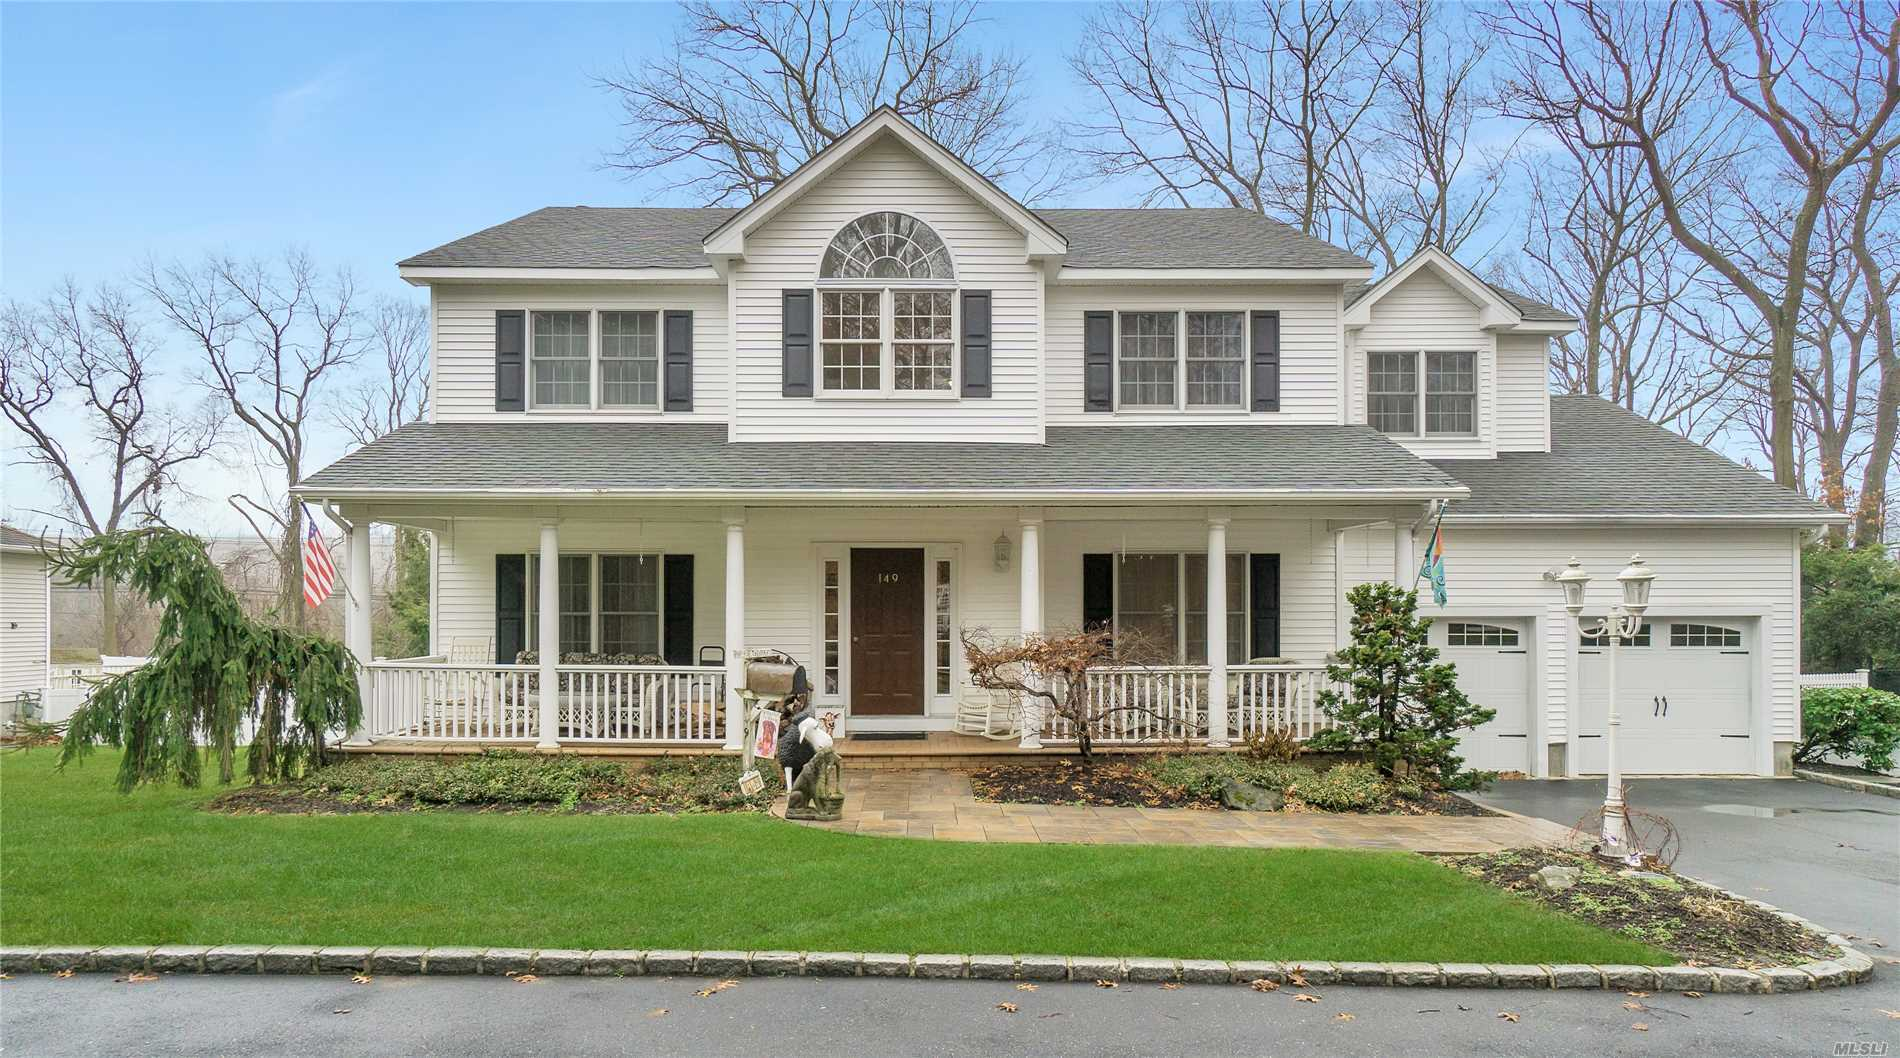 Custom Built Quality Thruout/Original Owners/Lower Level Was Approved Child Care Facility/Private Street/Circular Drive Plus Regular Driveway/Hardwood Floors/Designer Granite Kitchen/Fireplace Heat-O-Lator/Potential Easy Generator/Central Vac And More!!